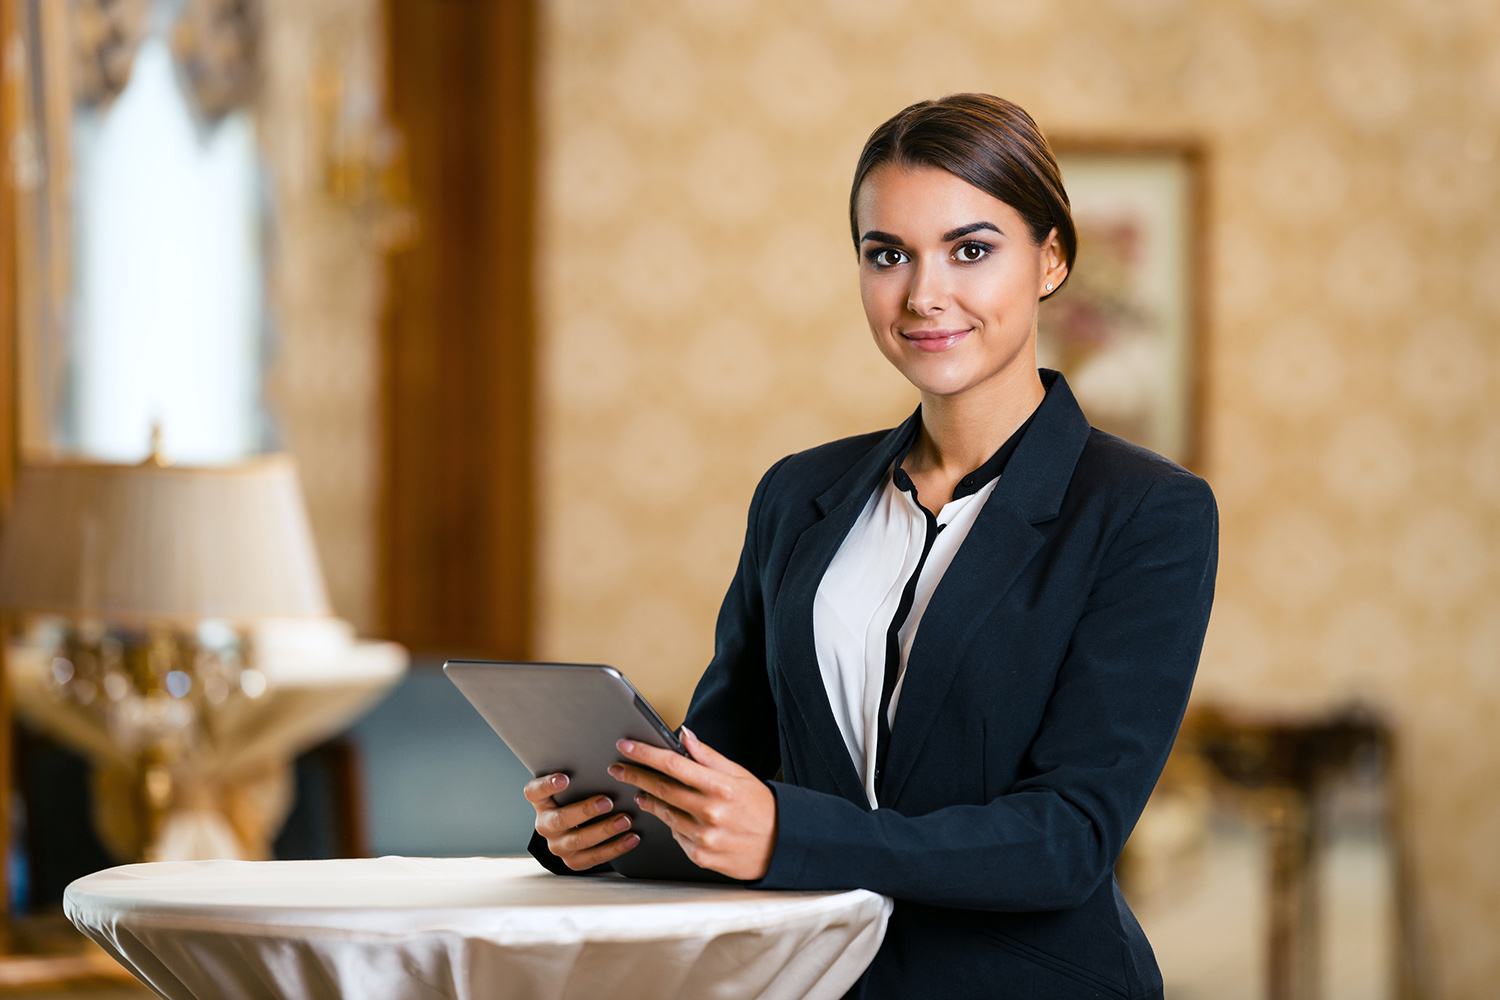 10 best hospitality service providers in the world